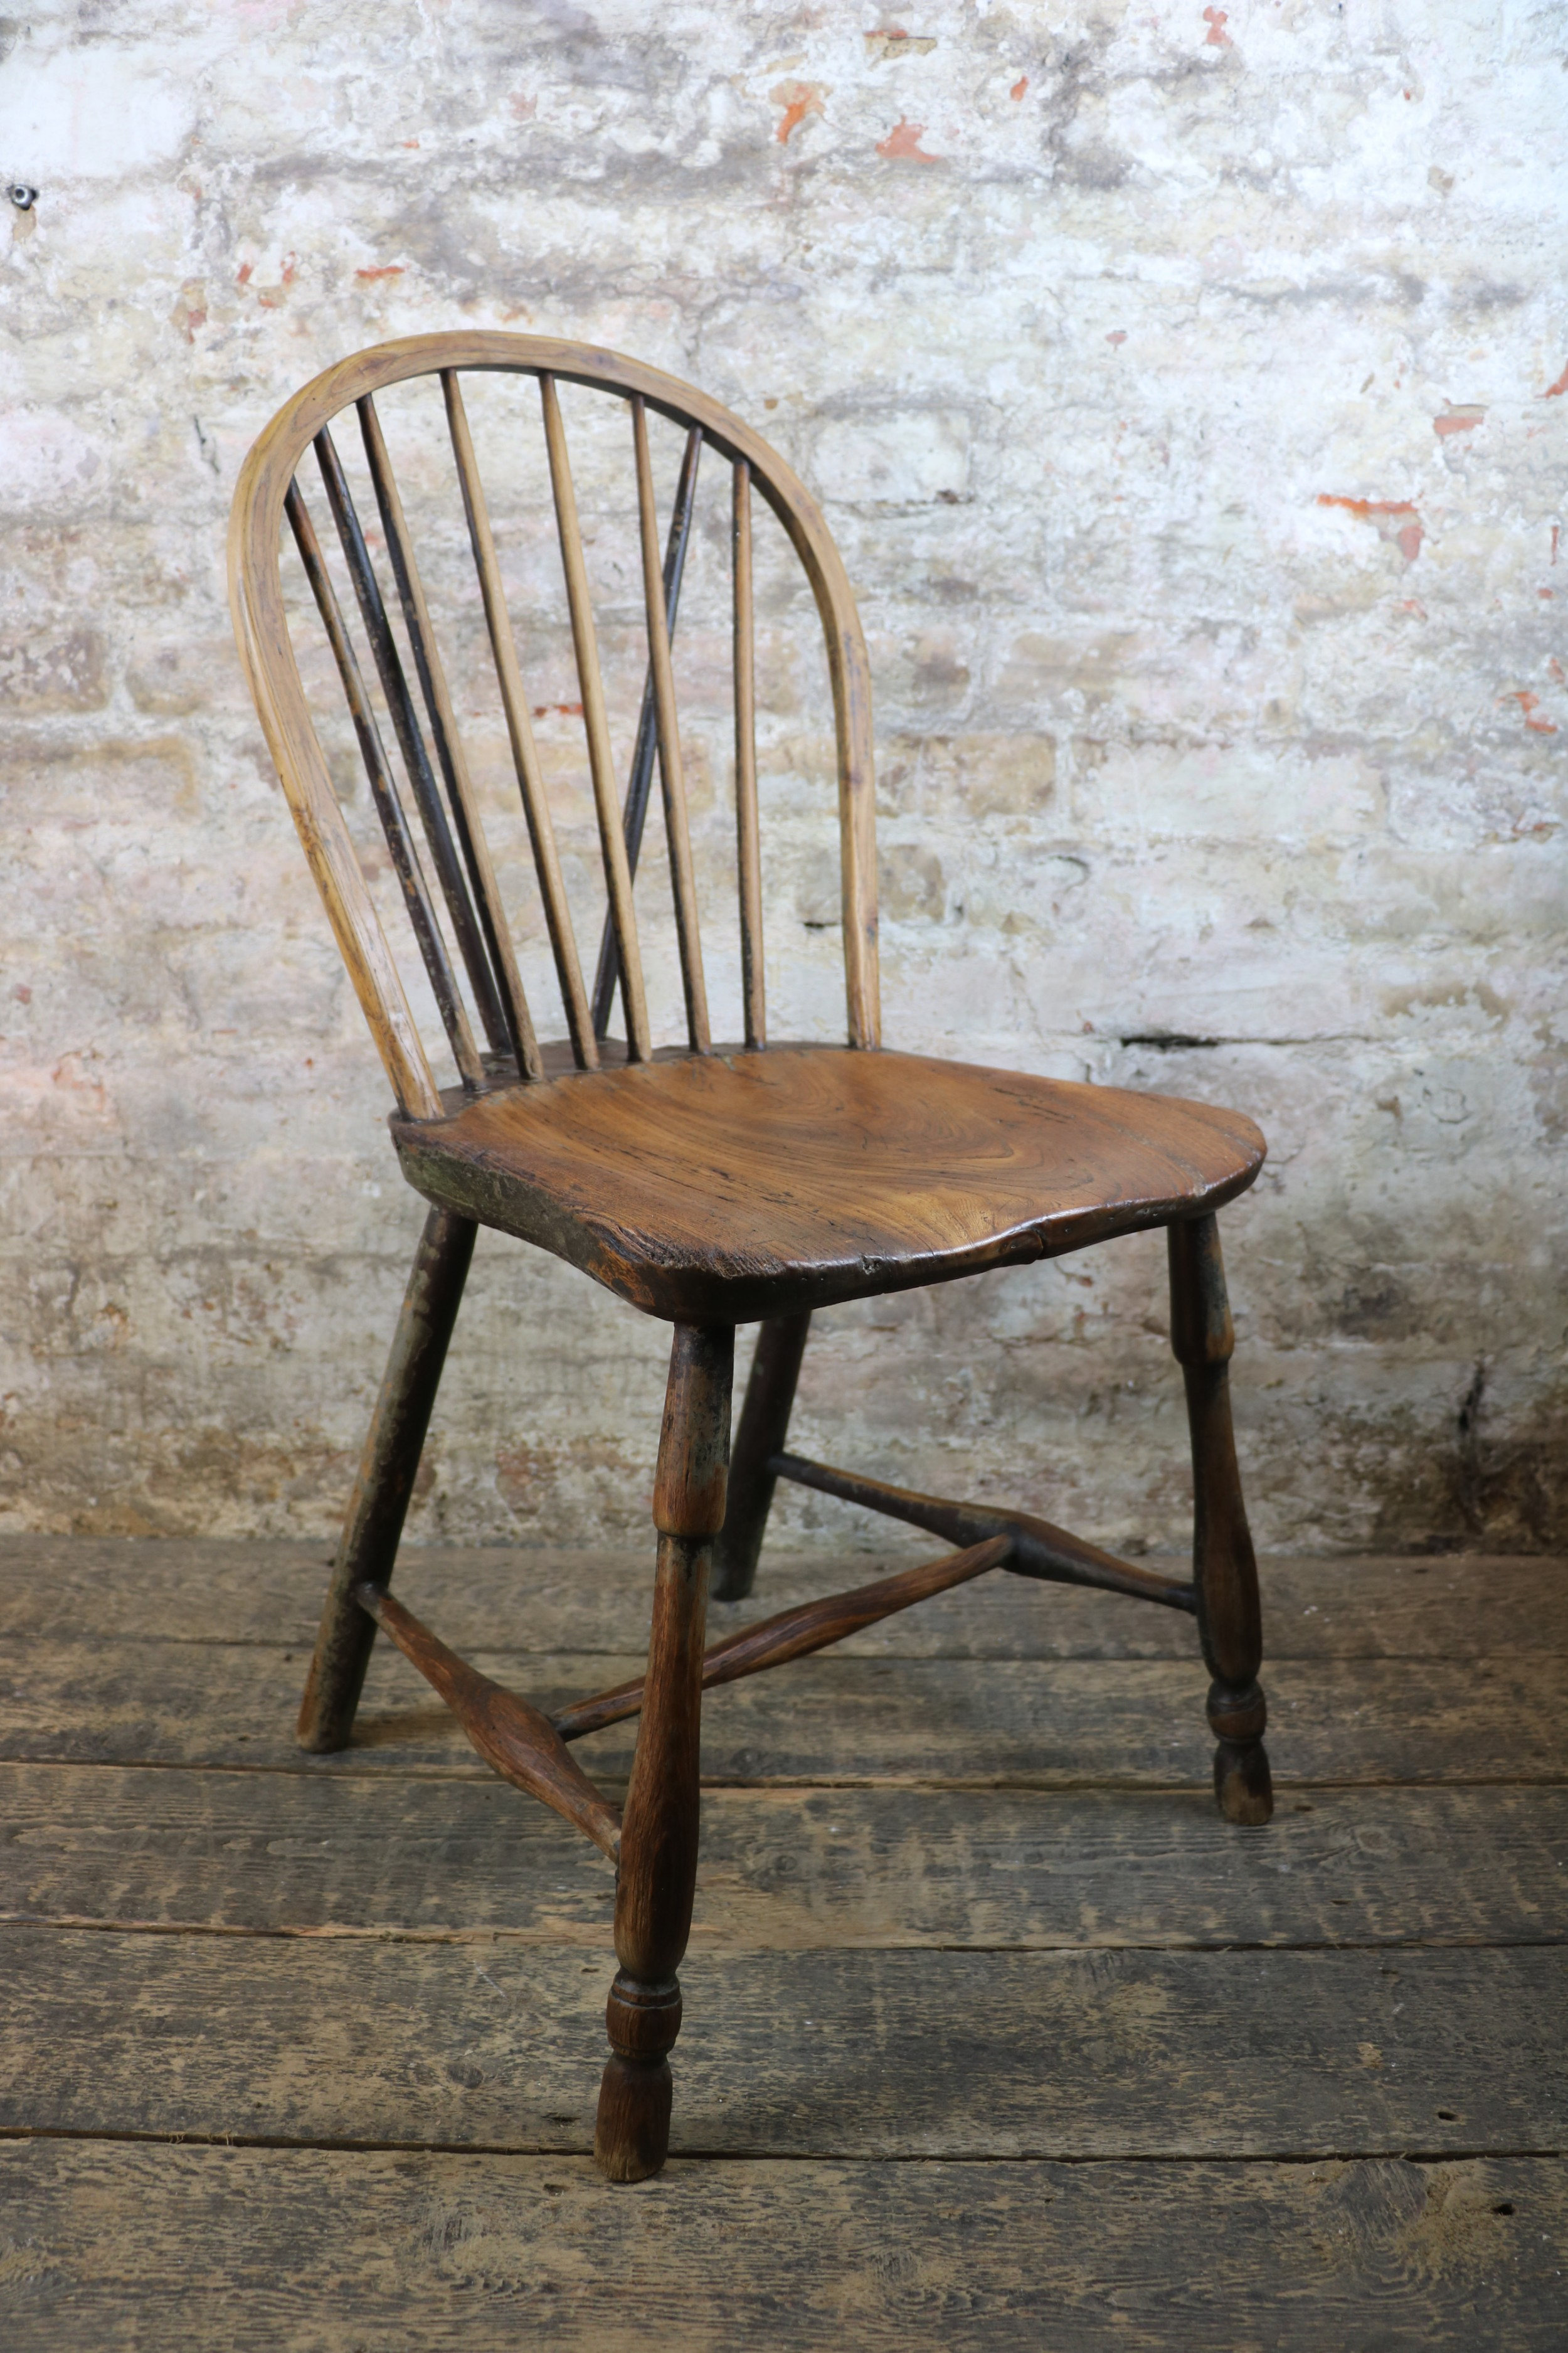 18th century west country stick chair hoop windsor antique primitive